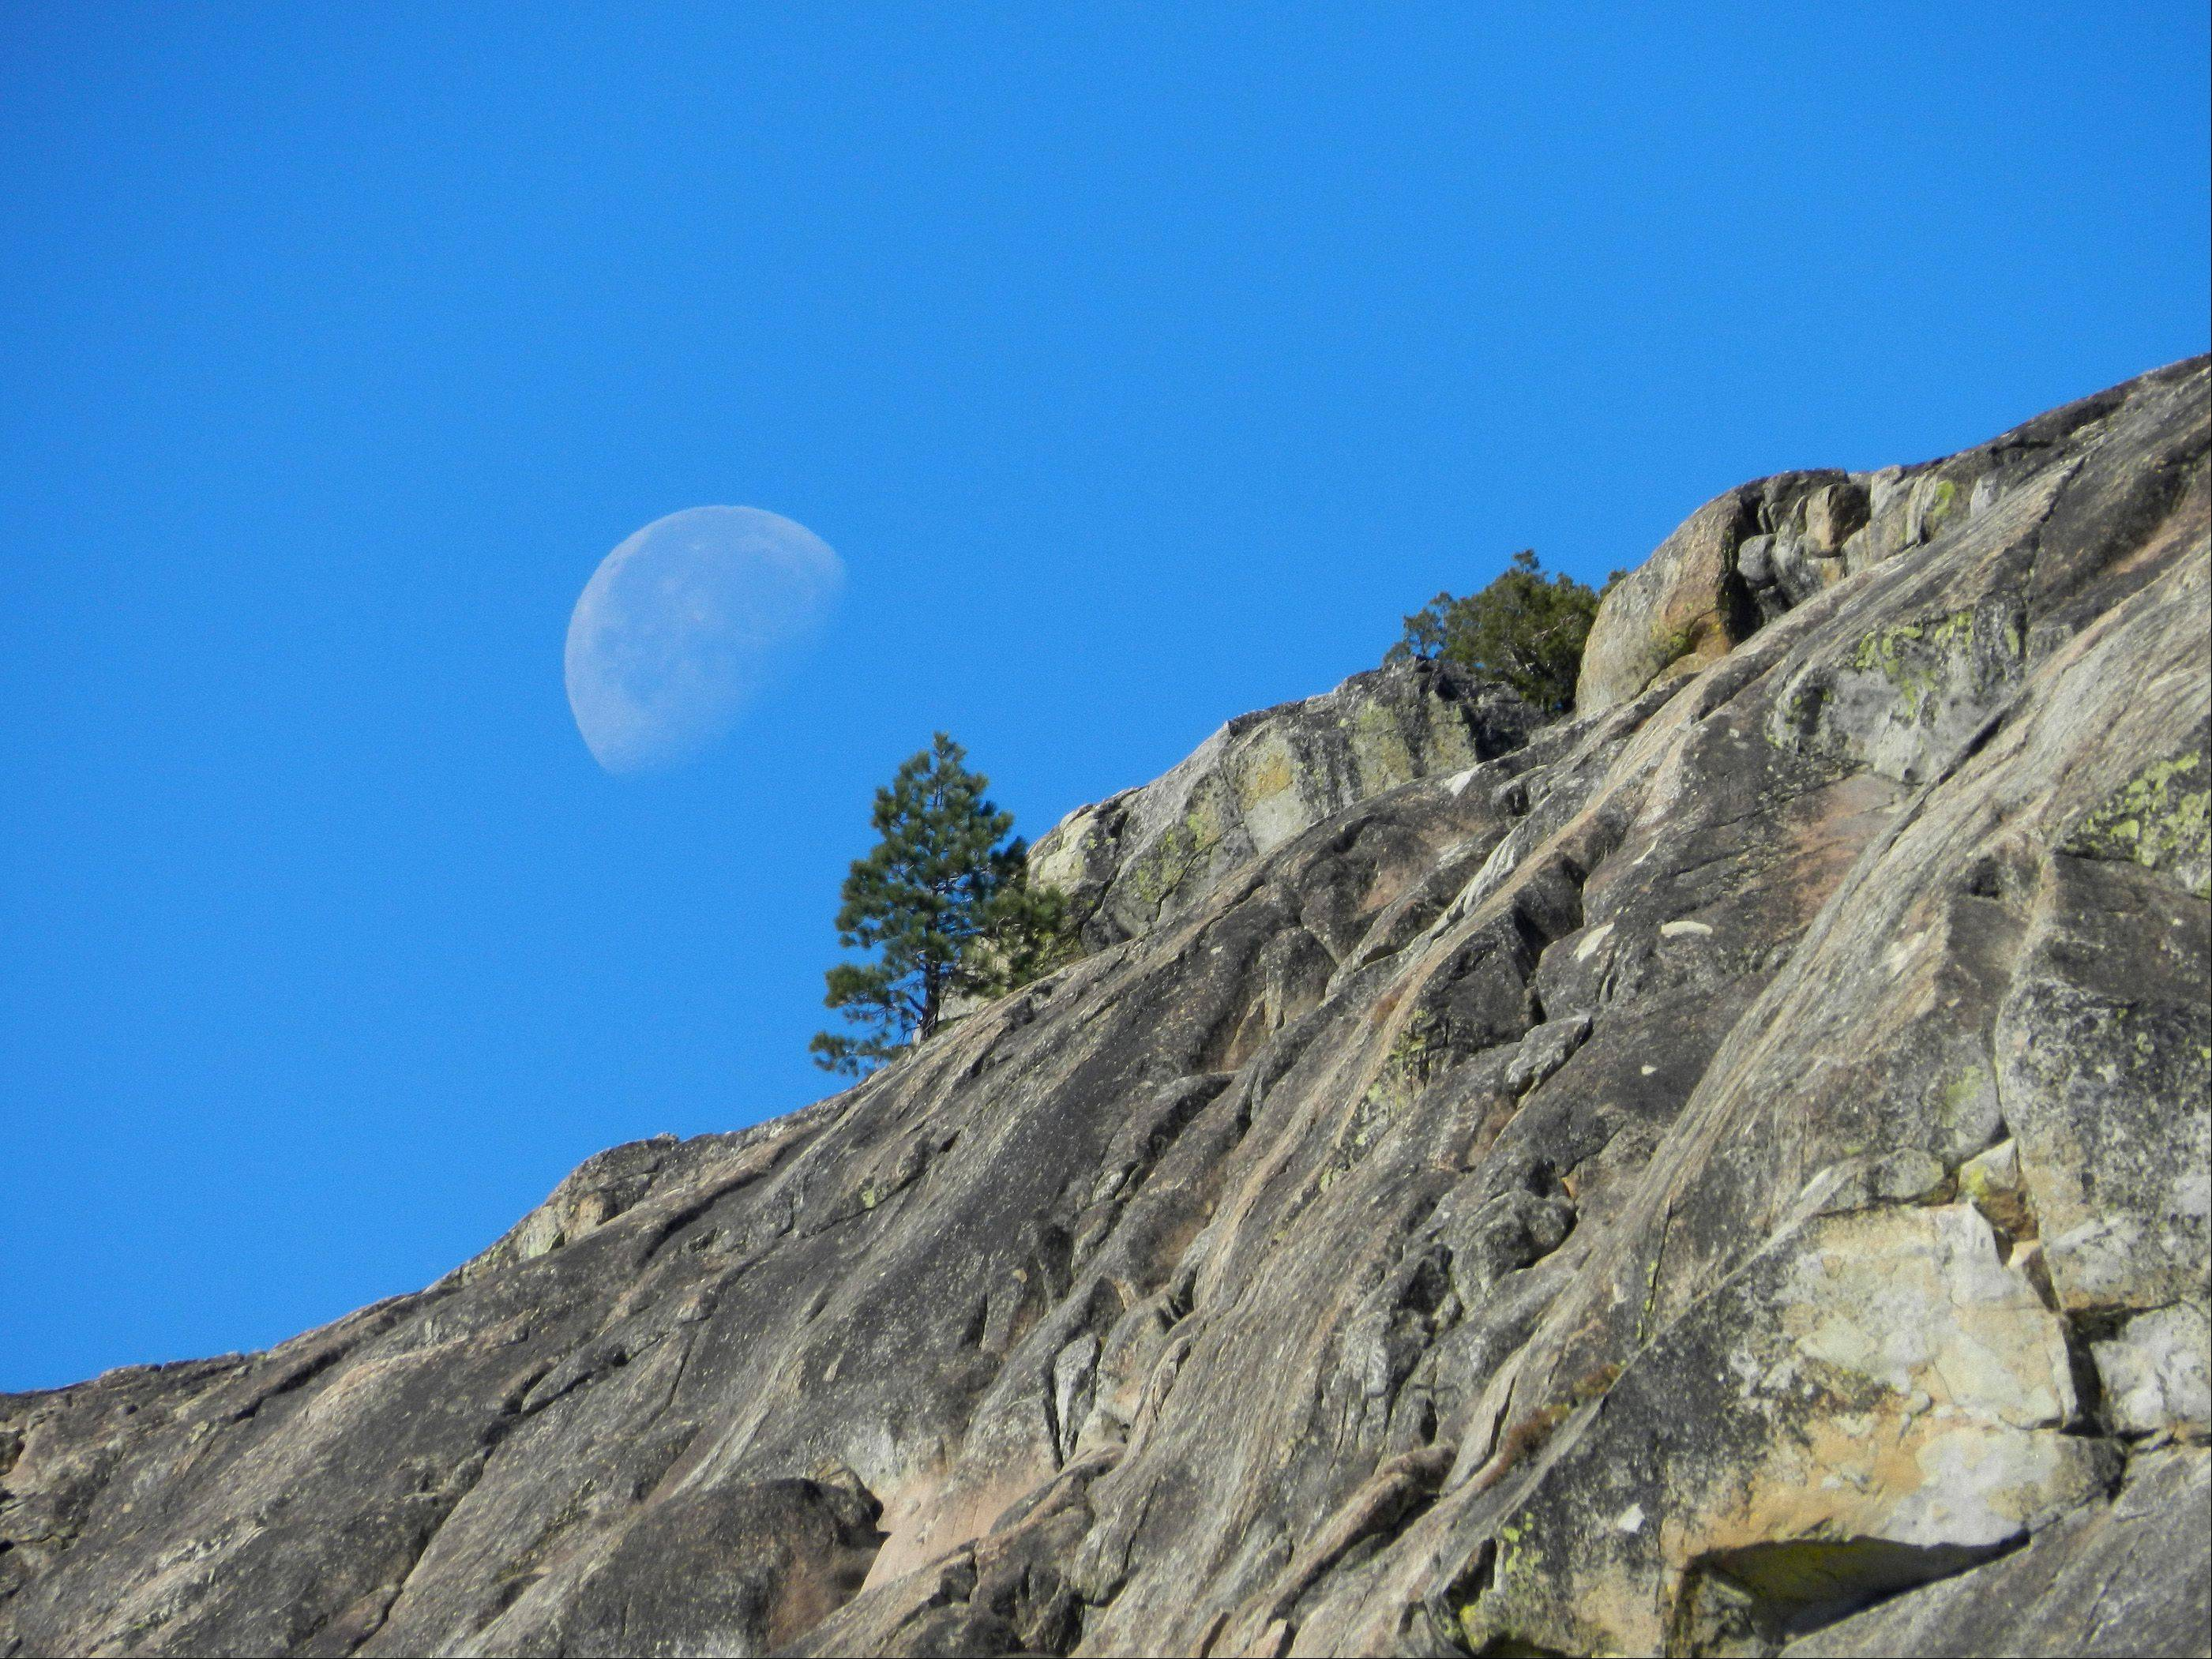 This is the moon looking over the mountain side at Donner Pass, which crosses the Sierra Nevadas just north of Lake Tahoe.